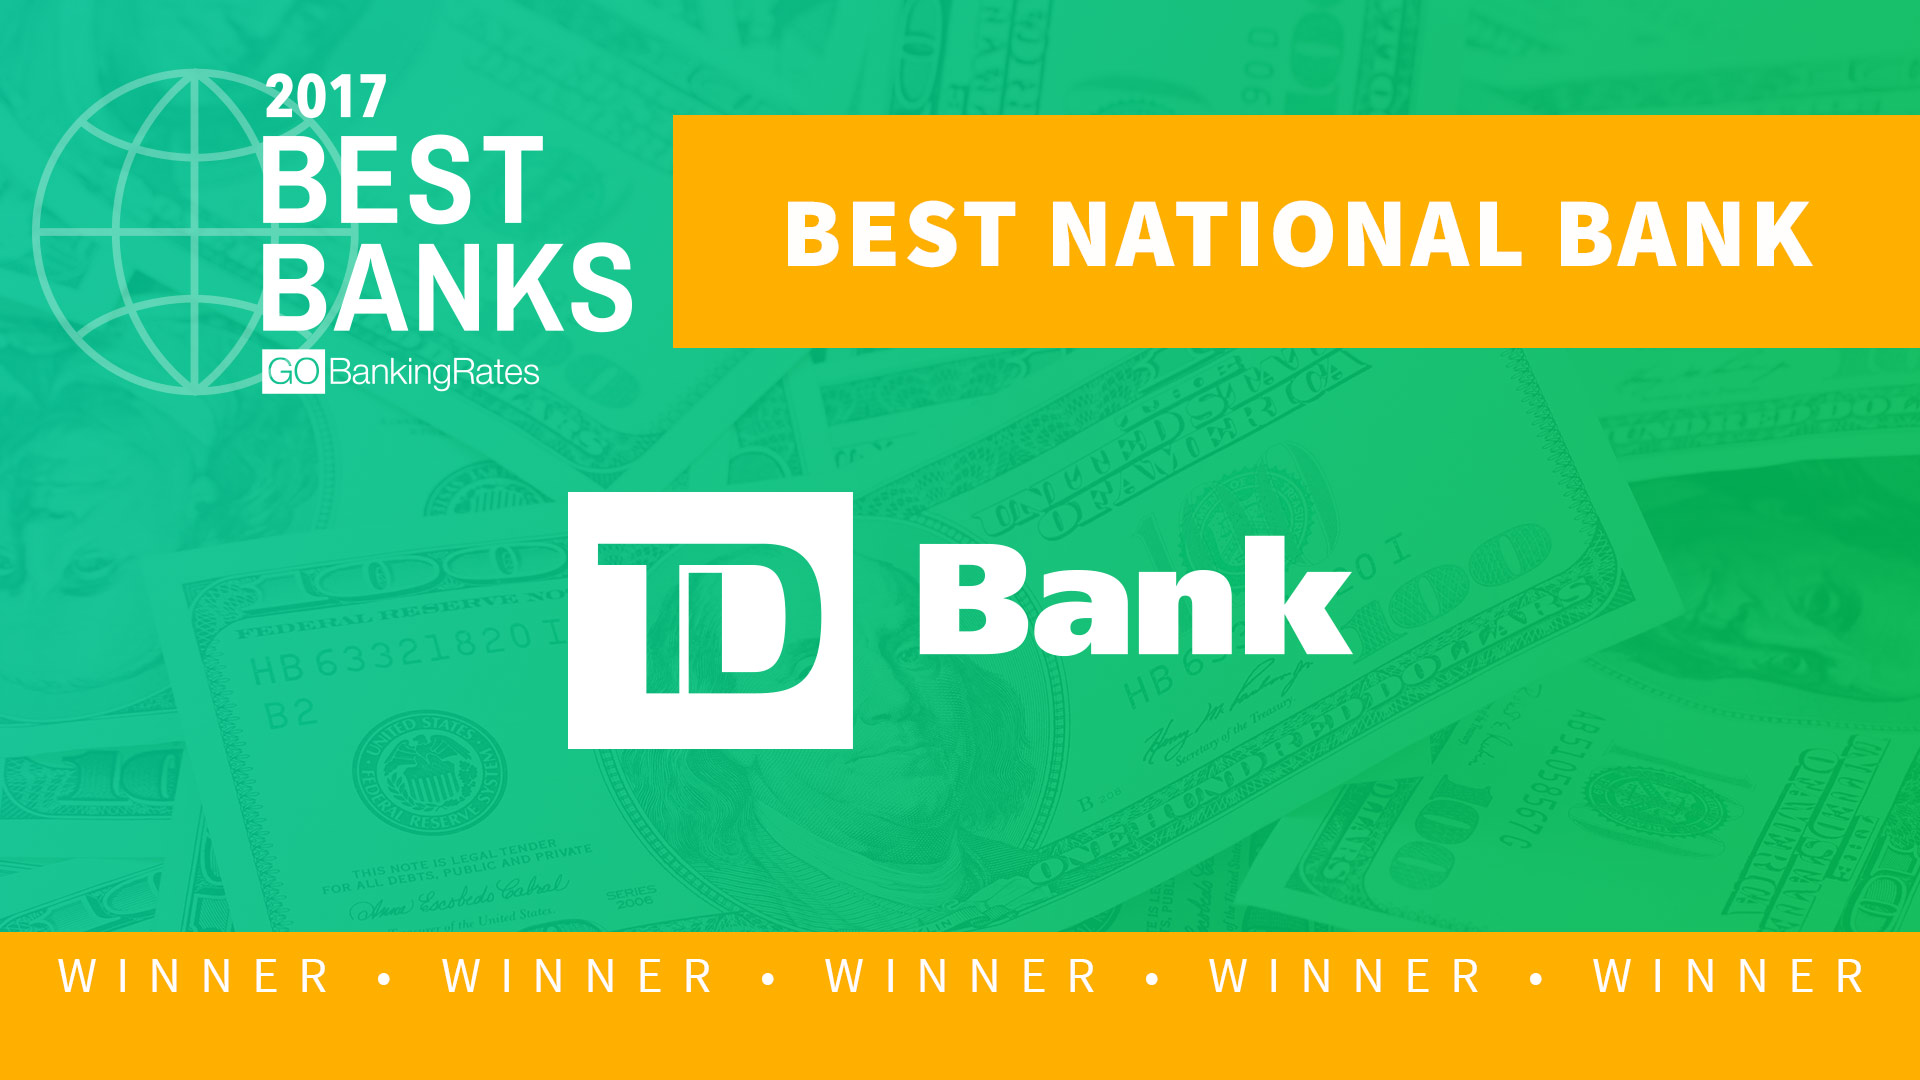 Best National Bank Of 2017 Td Bank Gobankingrates